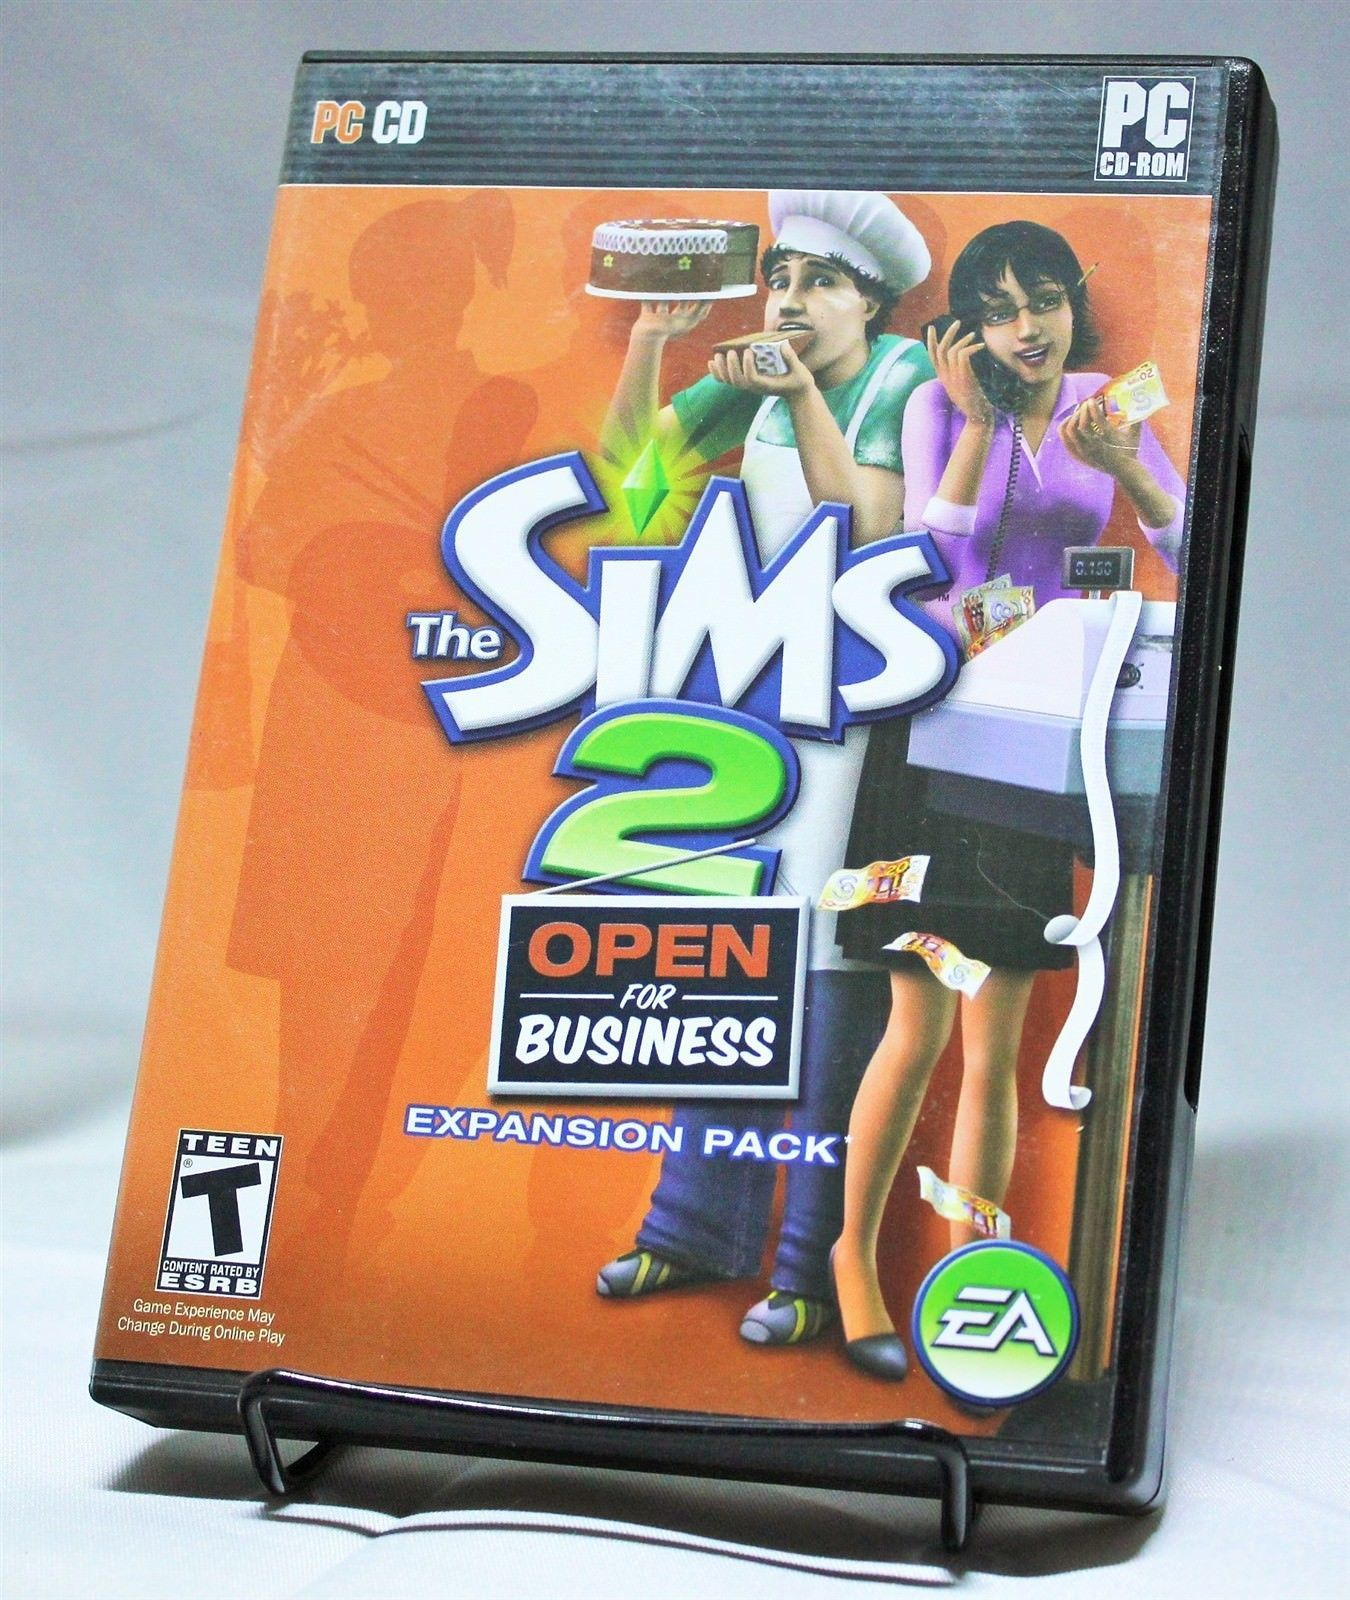 The Sims 2 Open For Business Expansion Pack and 50 similar items